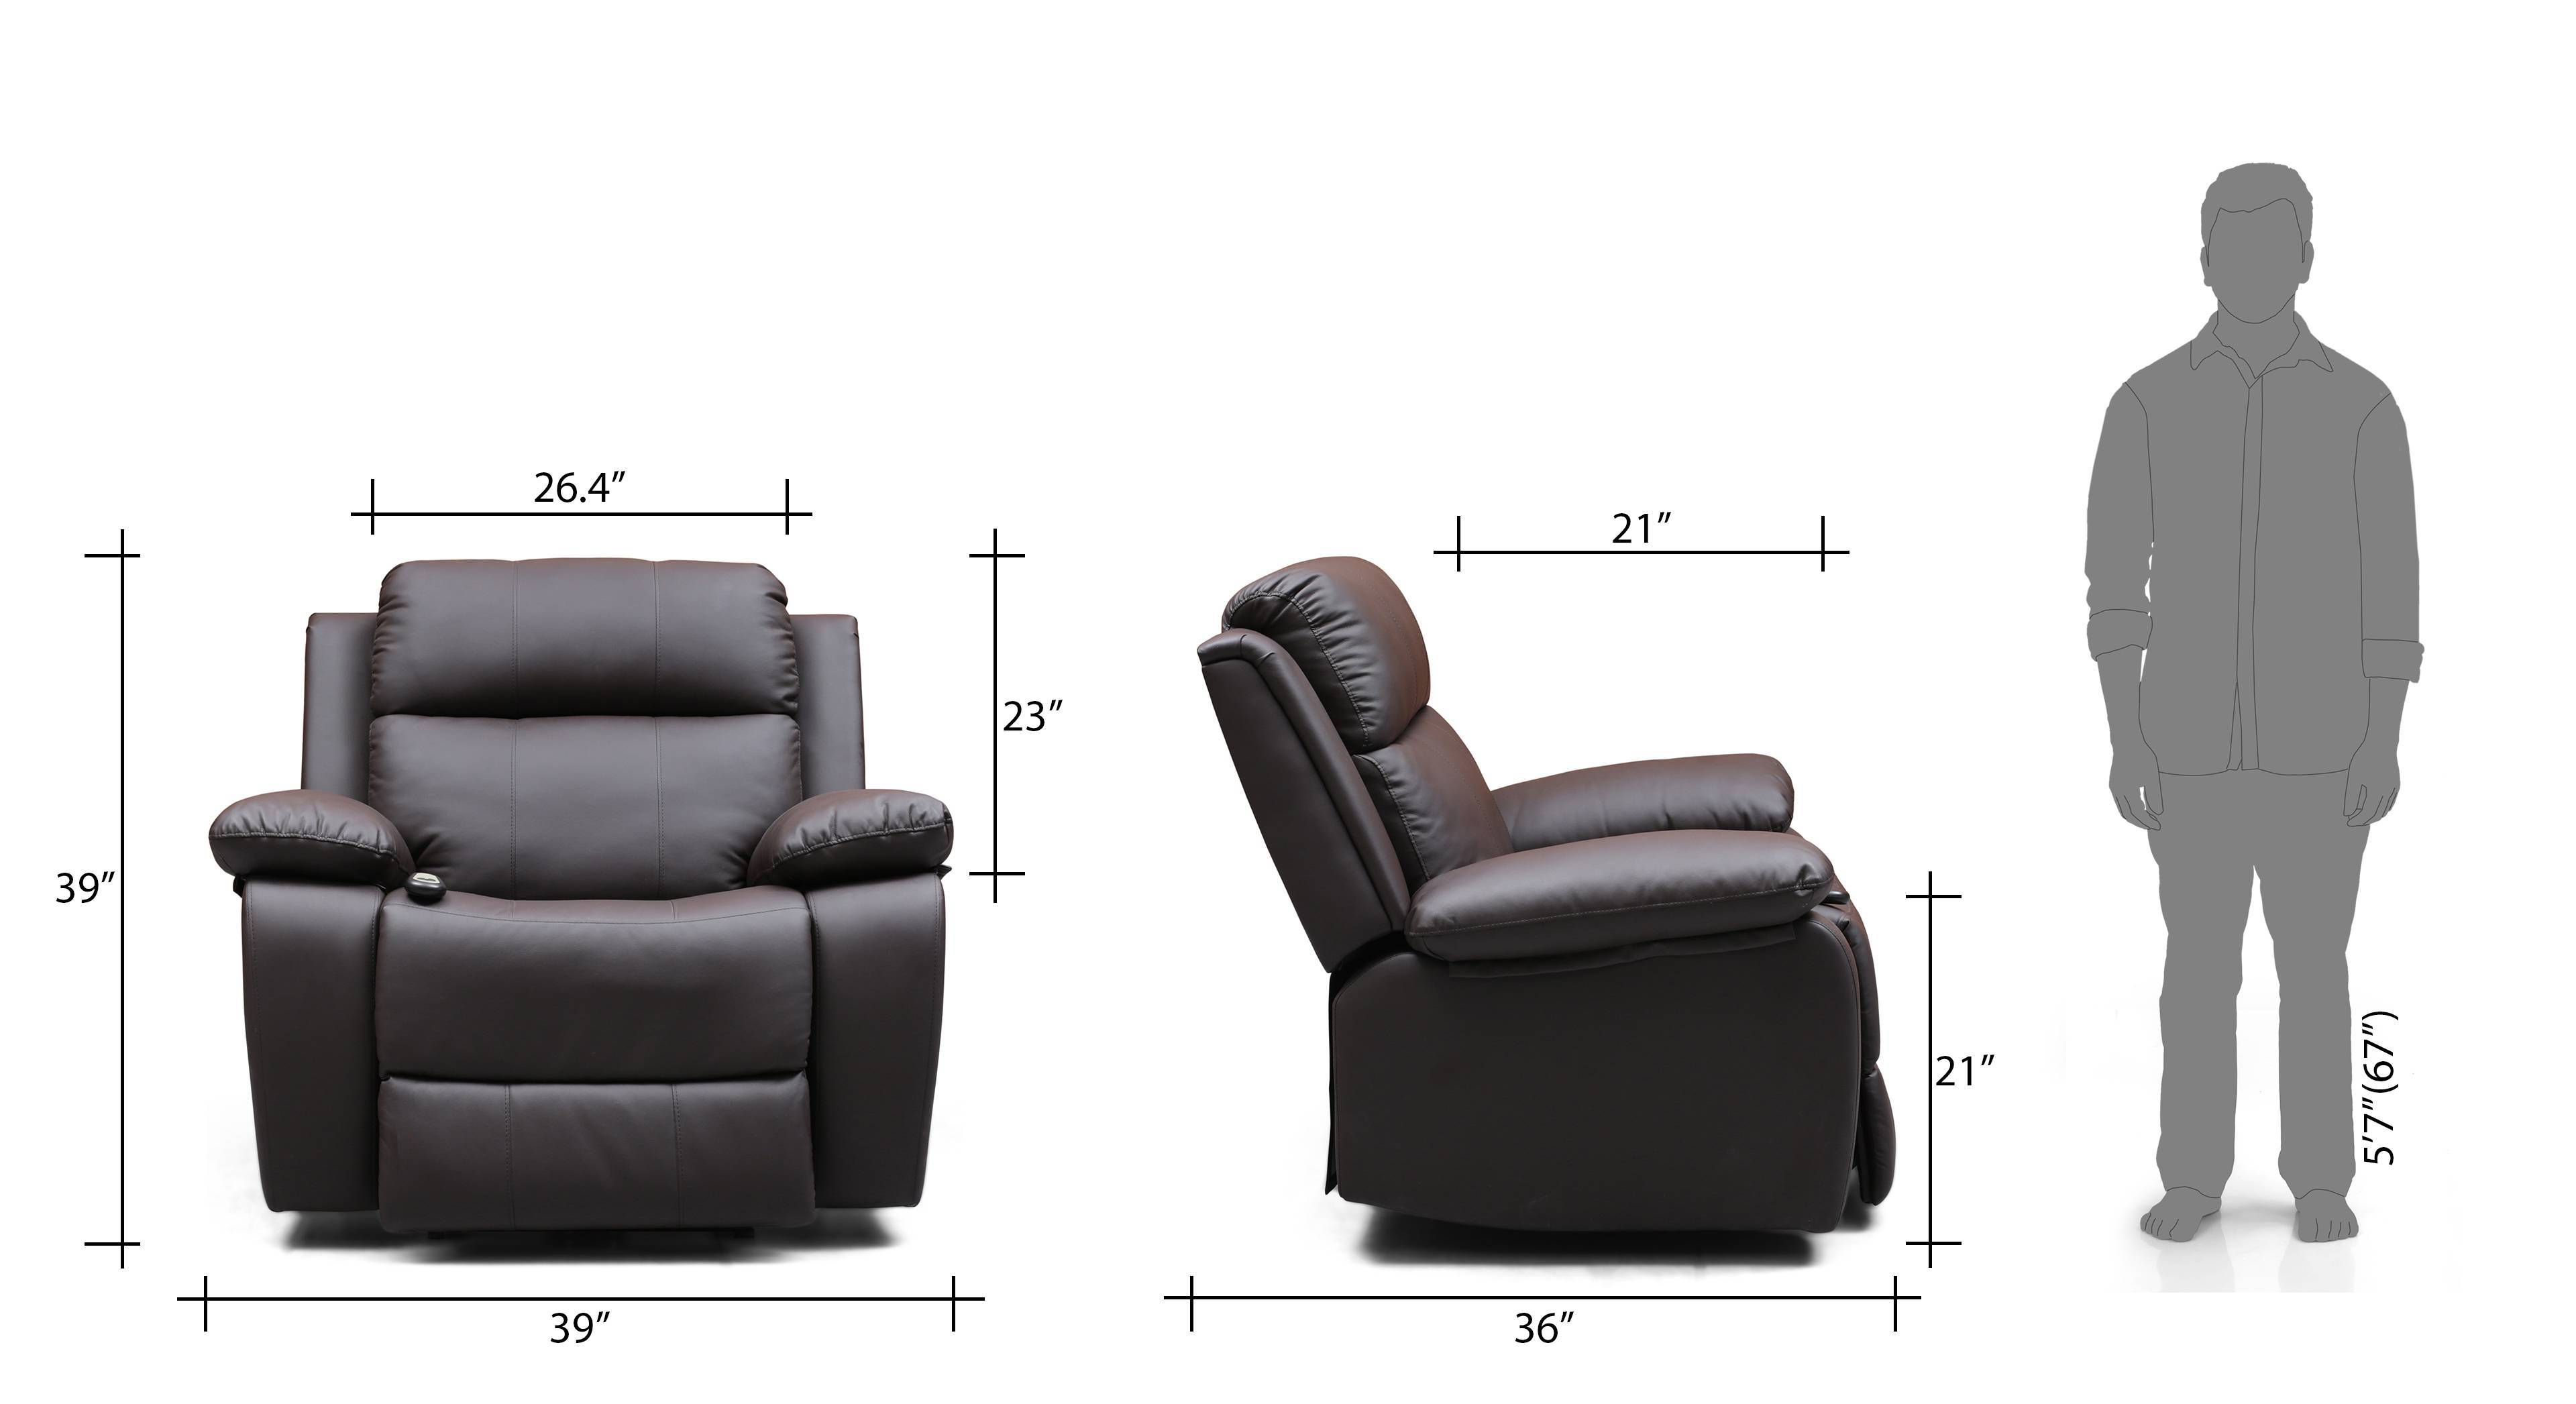 Robert motorised recliner 08